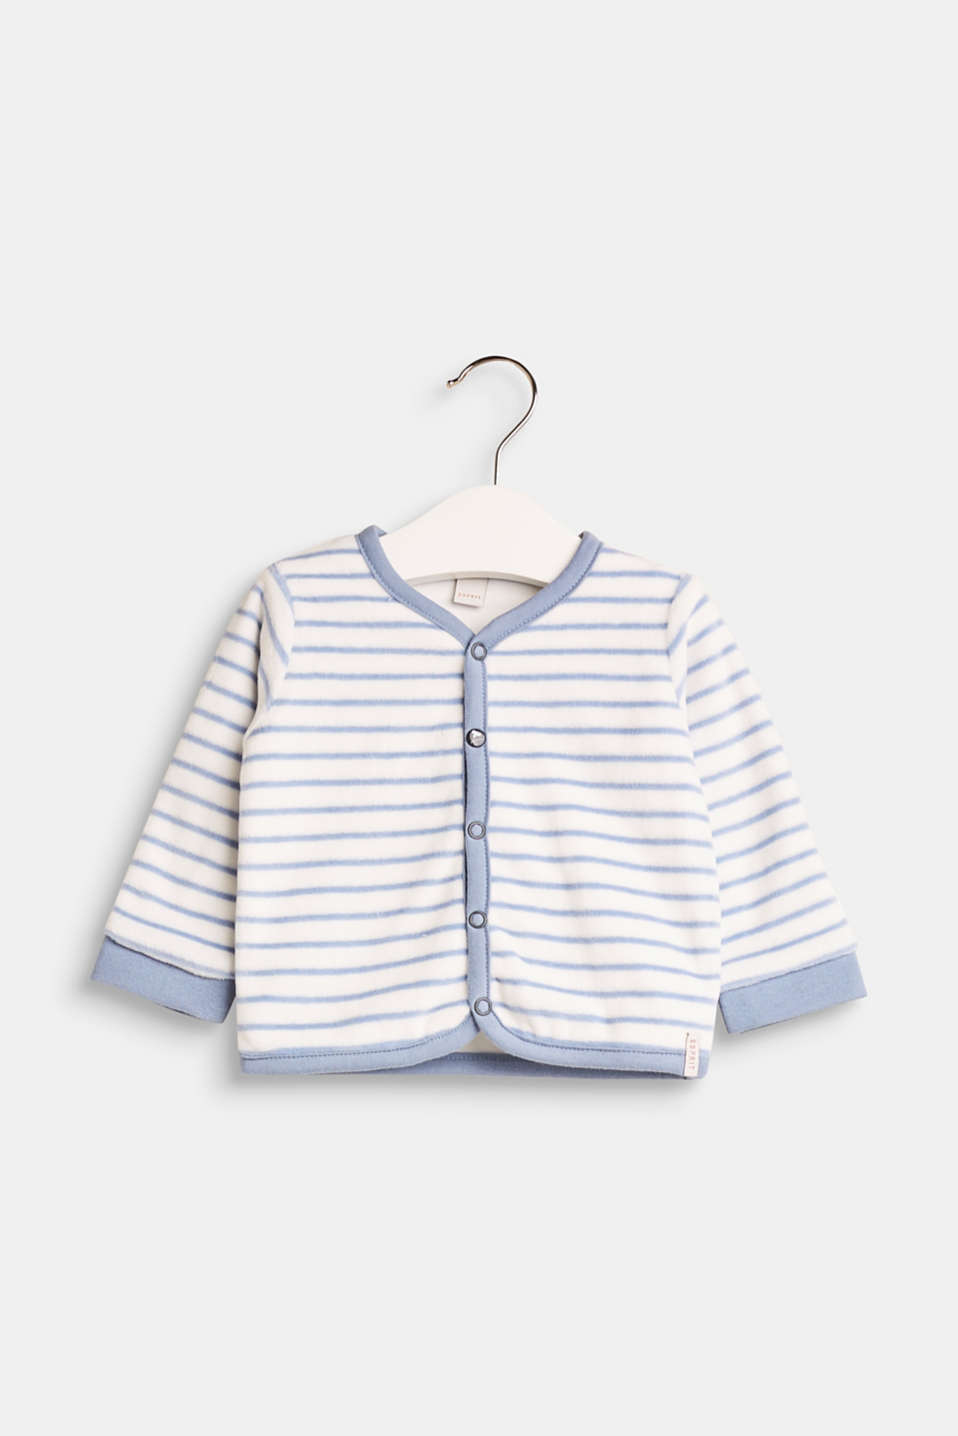 Tiny tots will feel simply wonderful in this striped cardigan made of extra-soft velour with premium organic cotton and a sweet press stud placket.